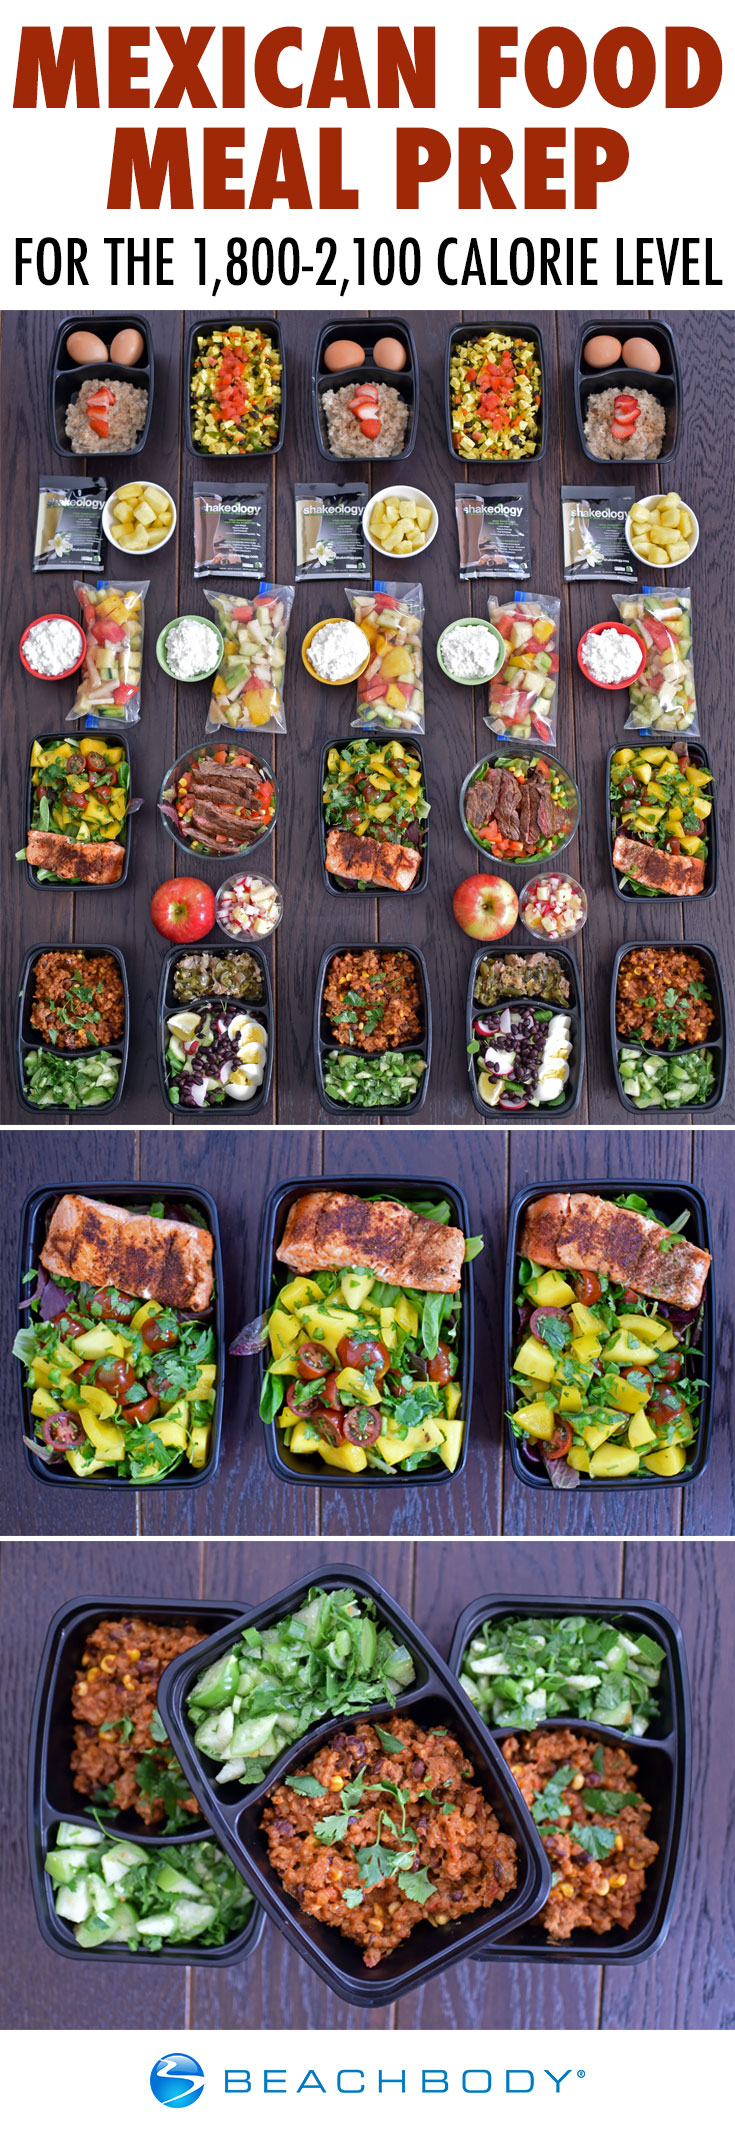 Mexican Food Meal Prep for the 1,800-2,100 Calorie Level | BeachbodyBlog.com